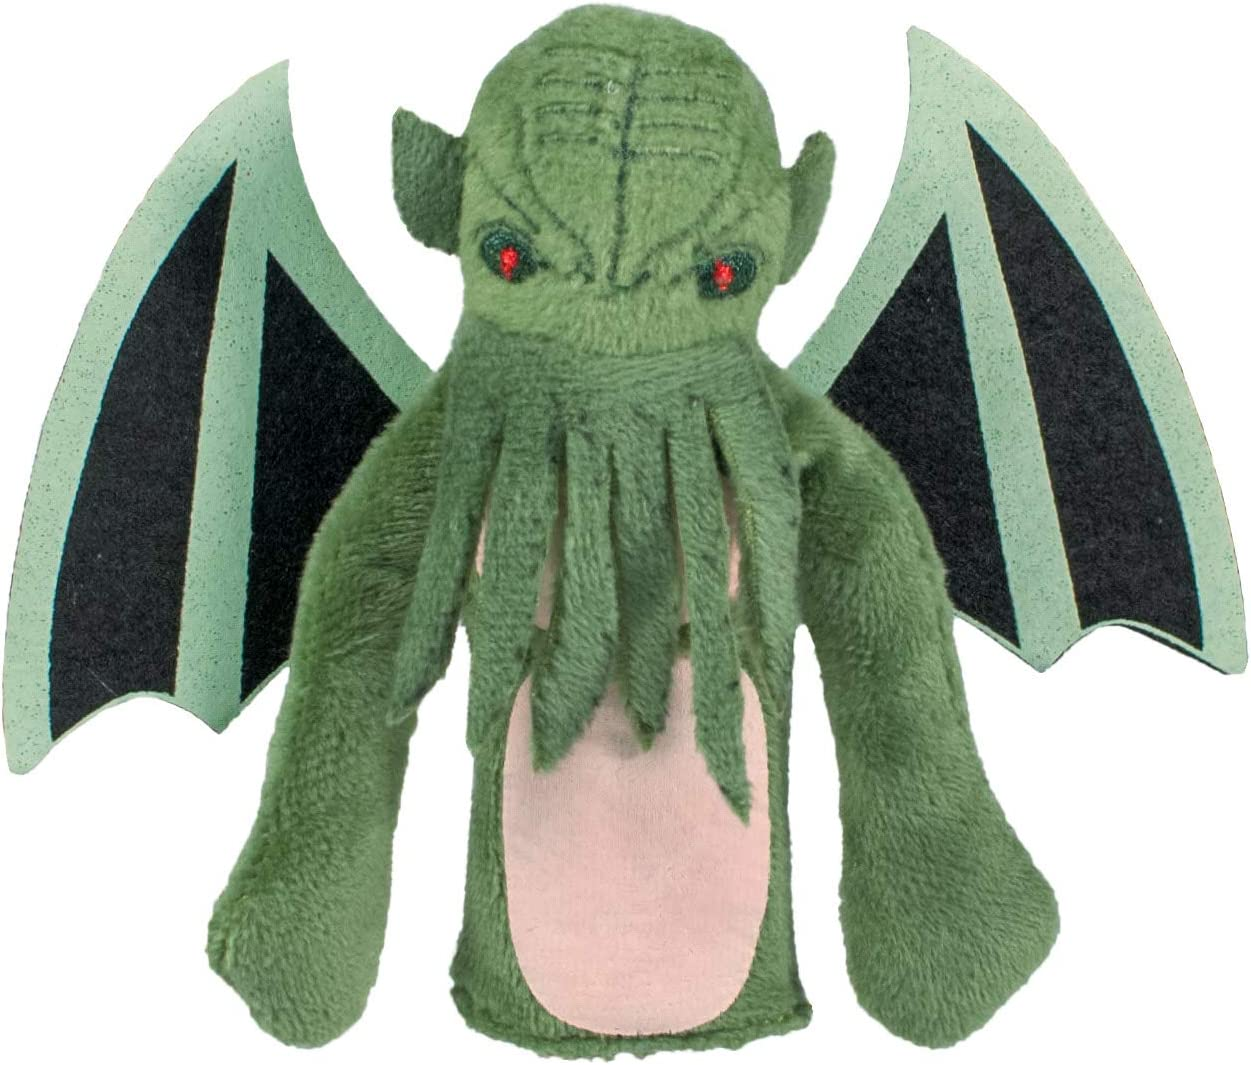 H. P. Lovecraft Cthulhu Finger Puppet and Refrigerator Magnet - For Kids and Adults